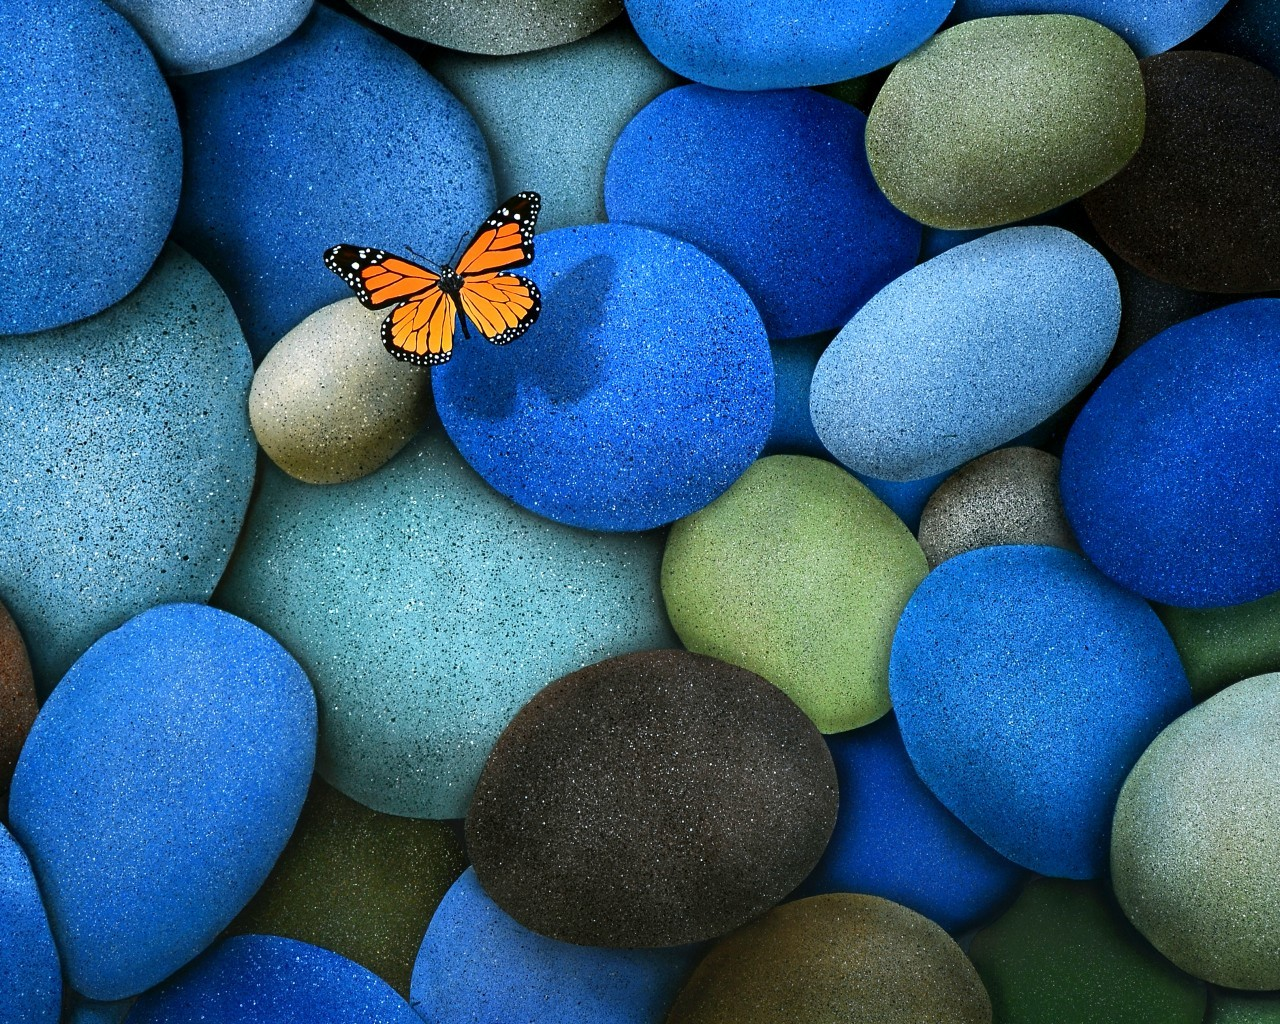 41228 download wallpaper Butterflies, Insects screensavers and pictures for free